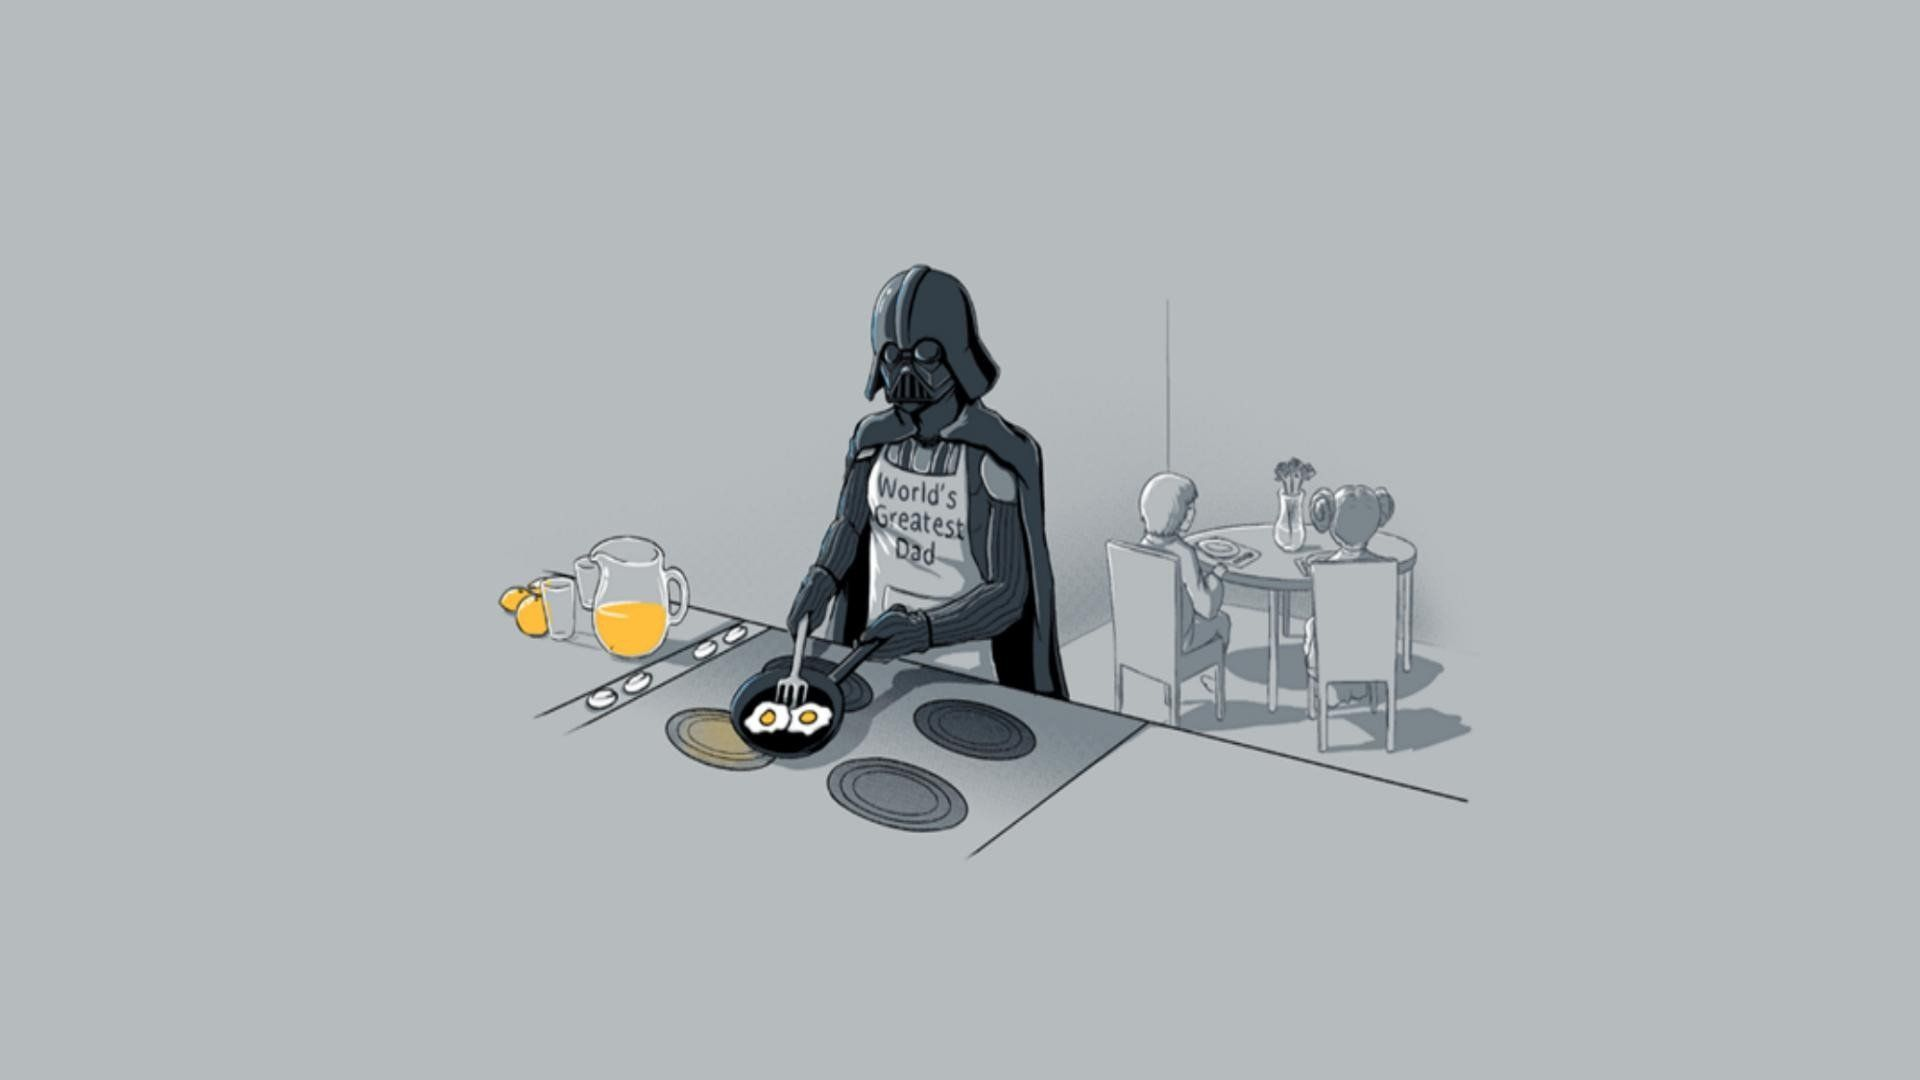 Funny Star Wars Wallpapers Top Free Funny Star Wars Backgrounds